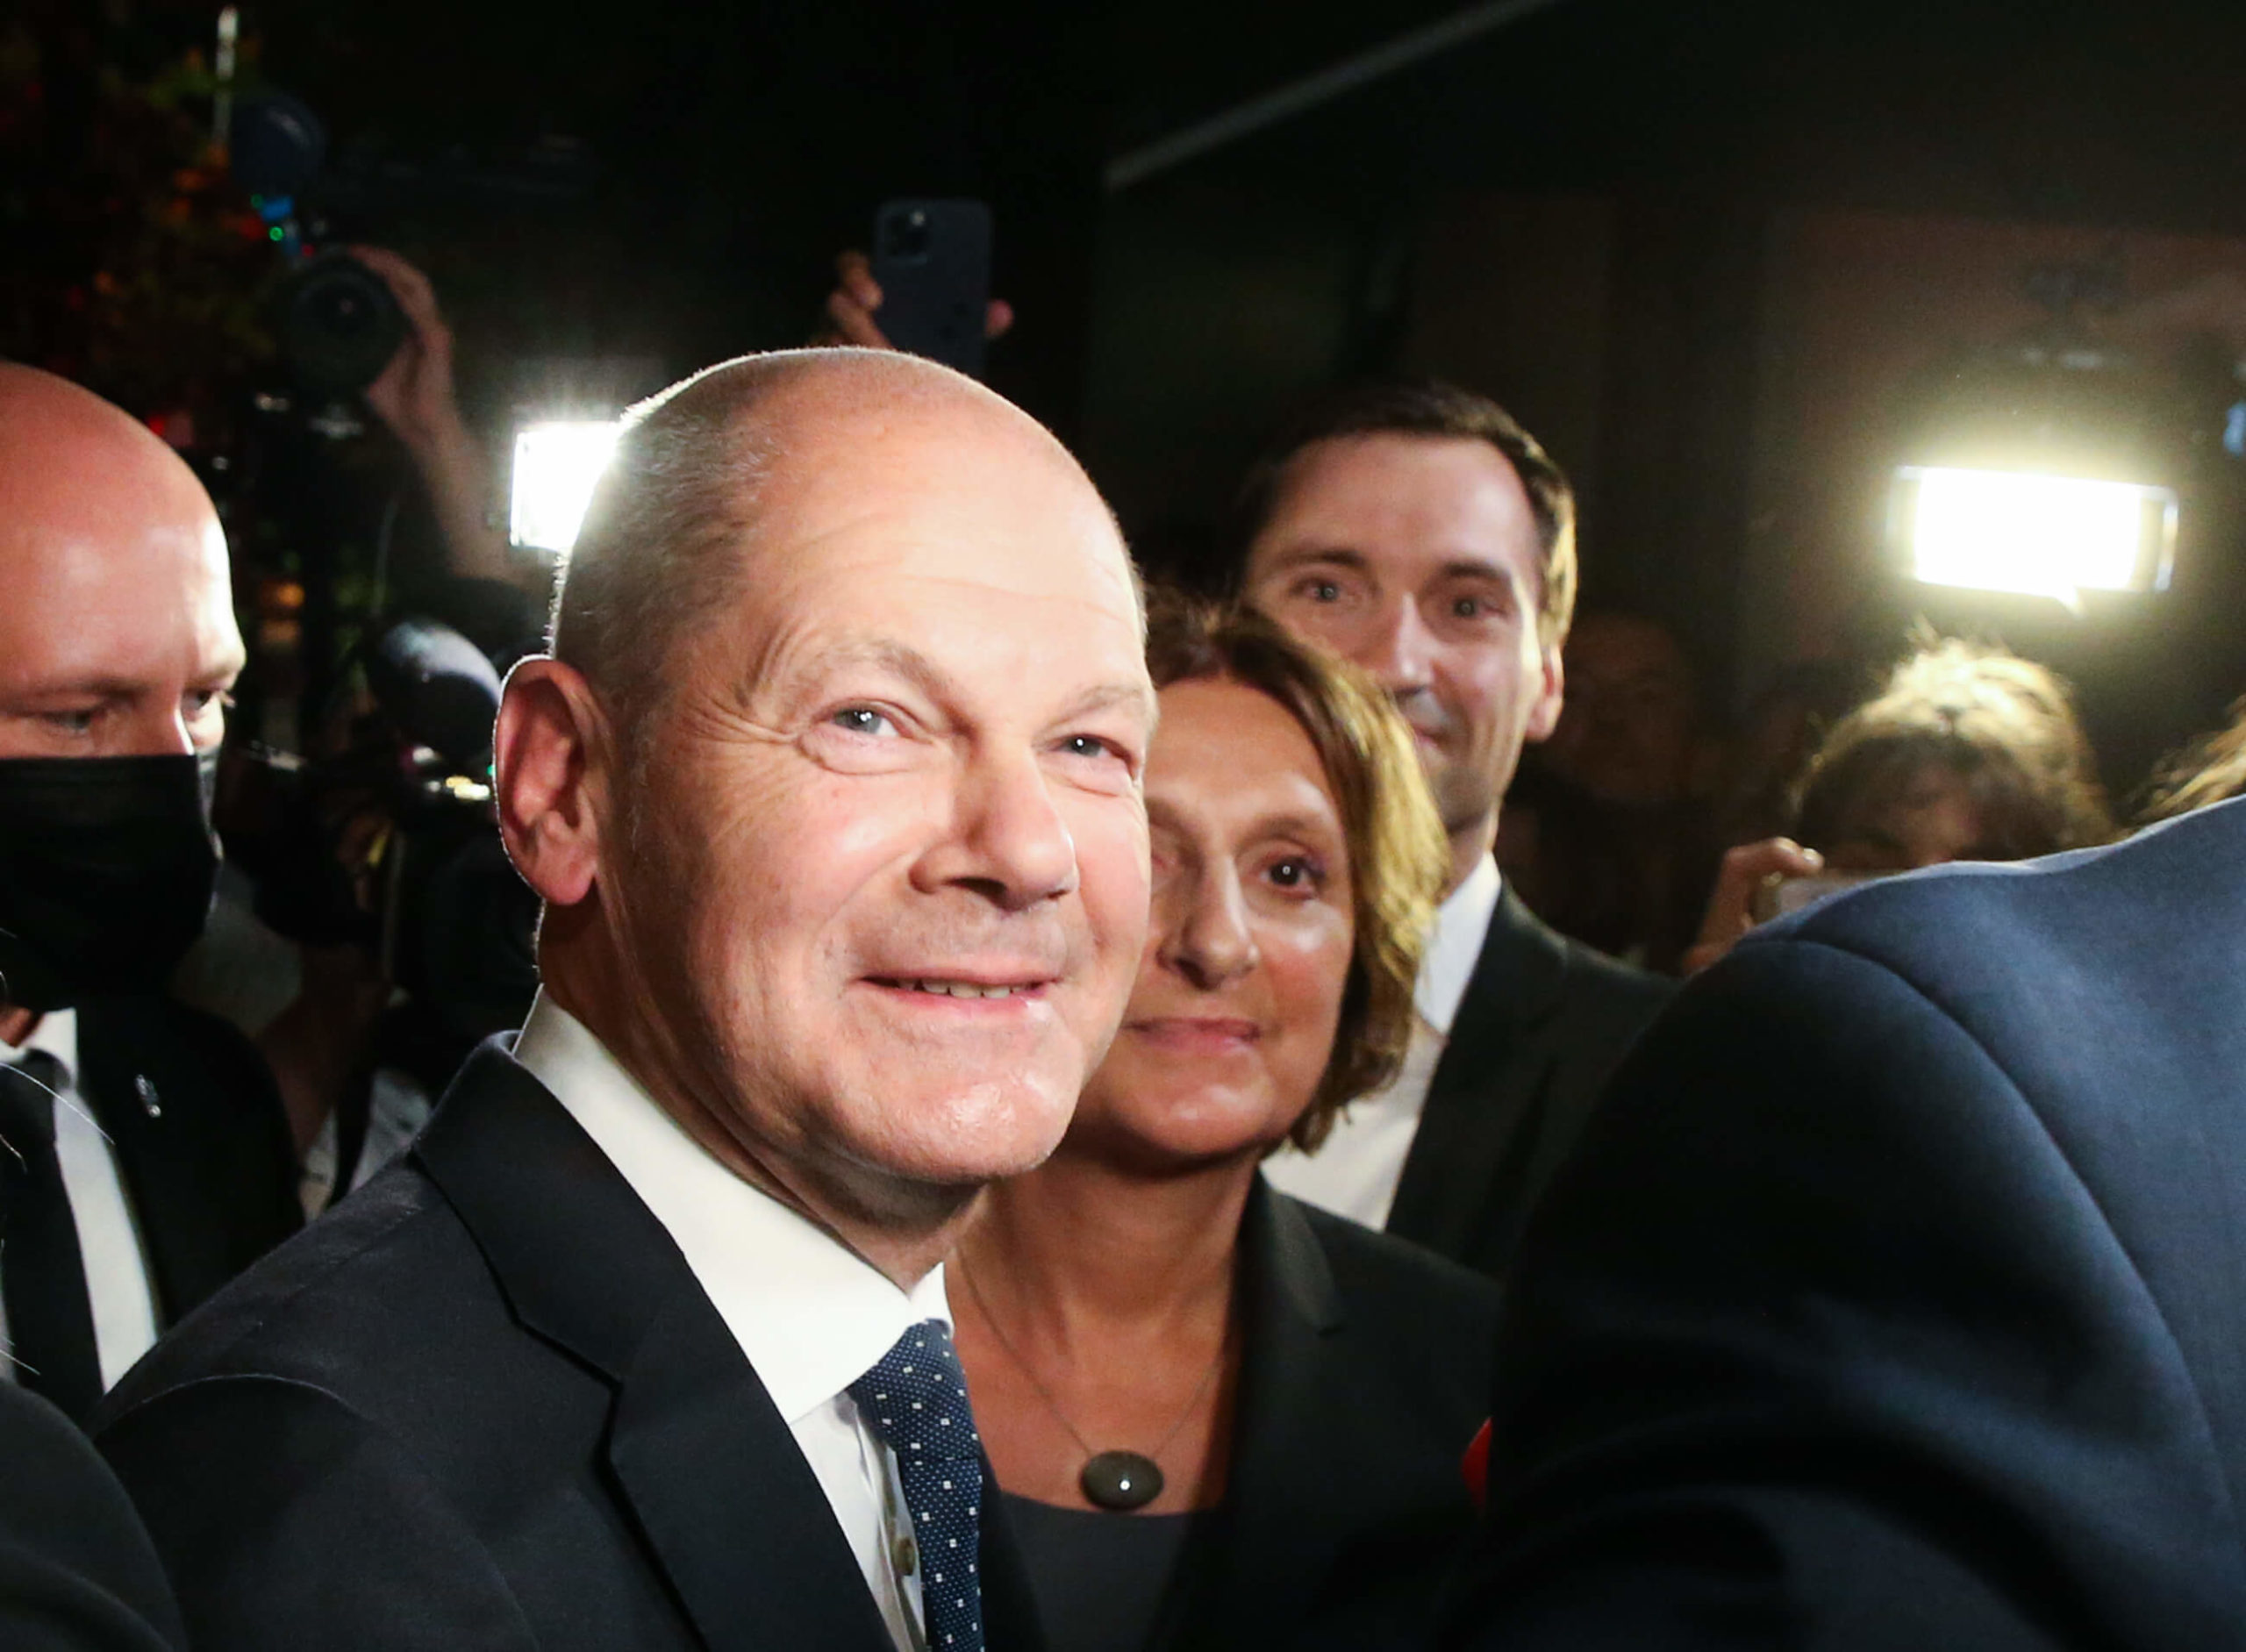 26 September 2021, Berlin: Olaf Scholz, finance minister and SPD candidate for chancellor, stands with his wife Britta Ernst after the election party at Willy Brandt House. On Sunday evening, after the first projections, Scholz reaffirmed his claim to form a future federal government under the leadership of the Social Democrats. Photo: Wolfgang Kumm/dpa